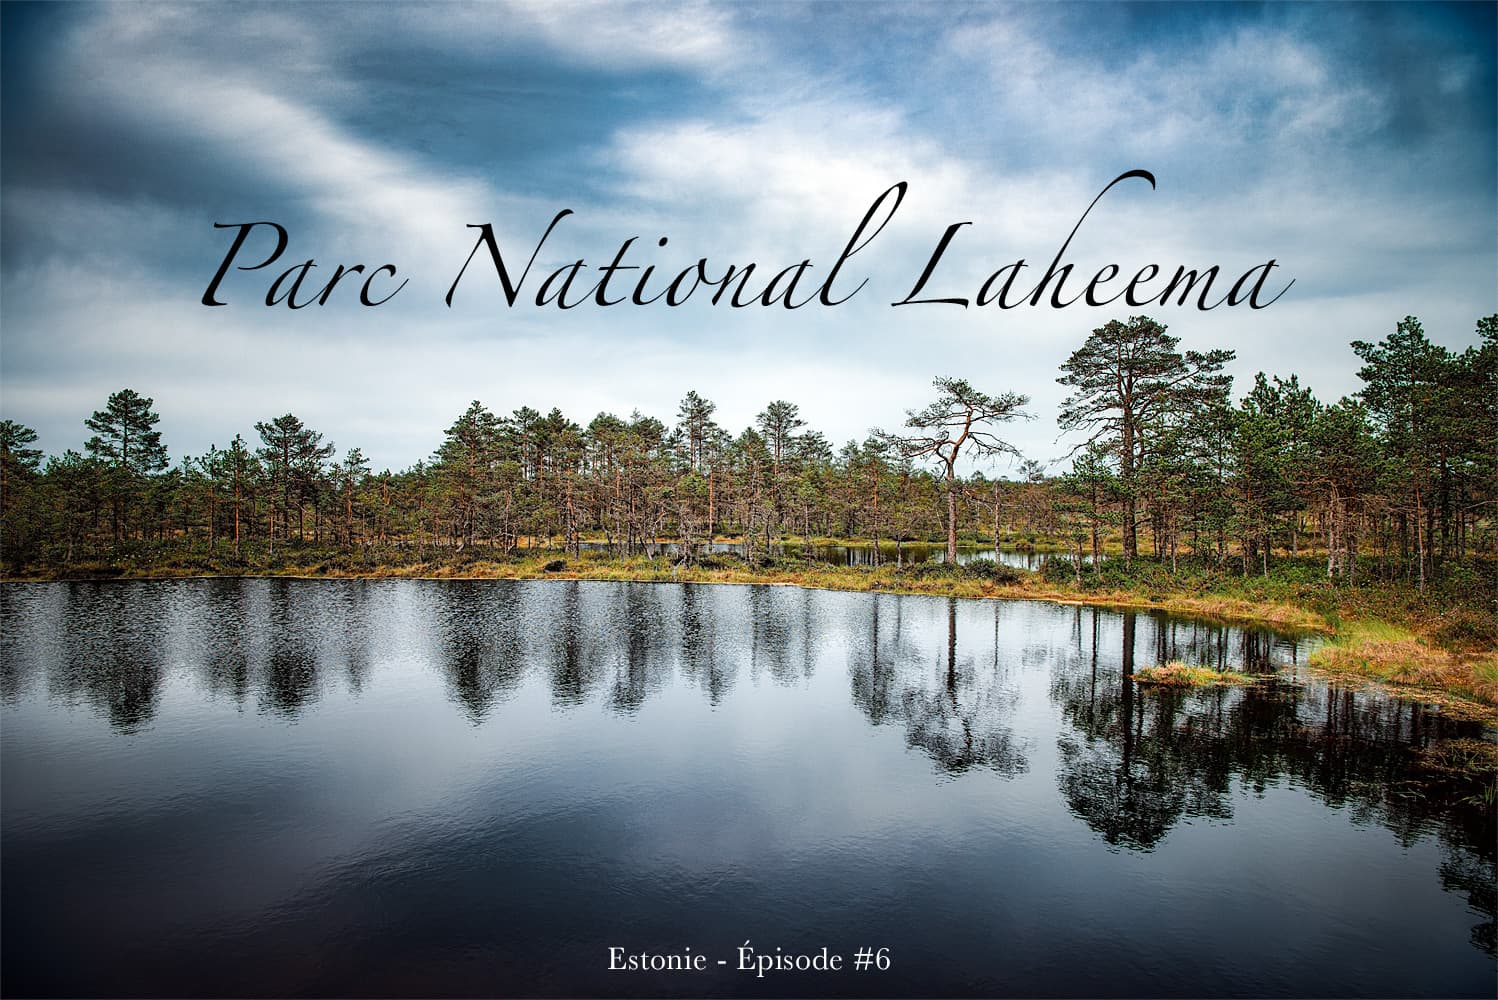 Le parc national de Laheema en Estonie